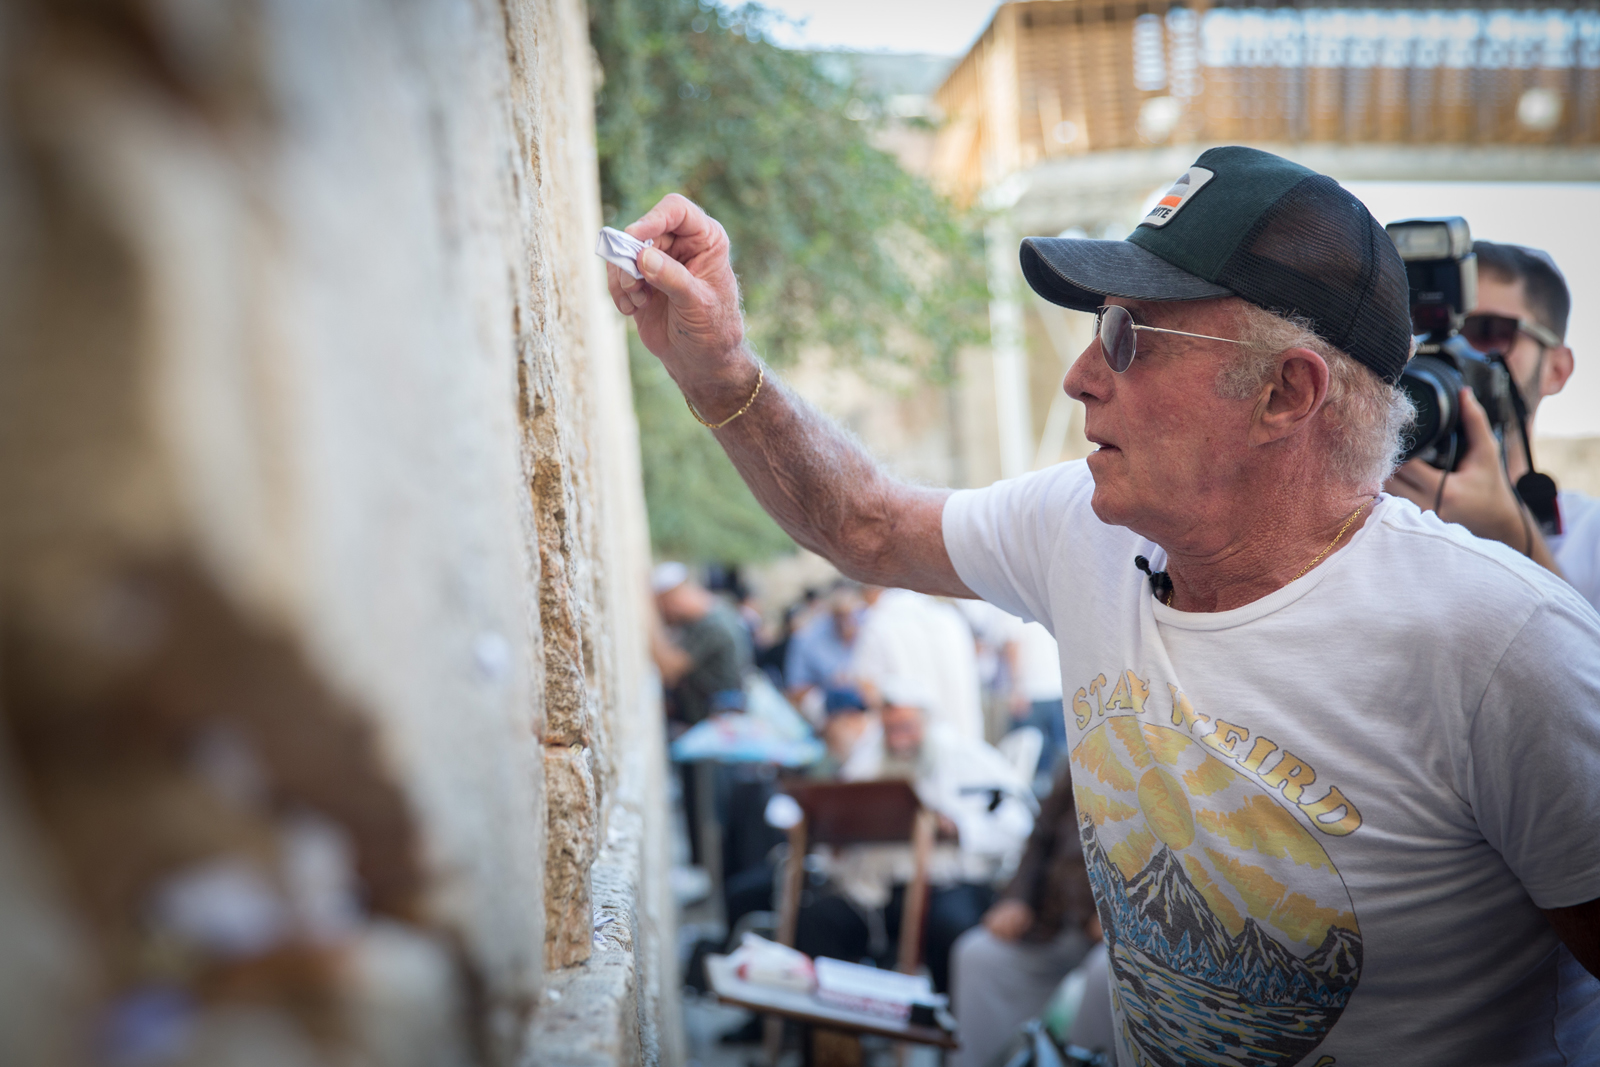 American actor James Caan at the Western Wall in Jerusalem. Photo by Flash90